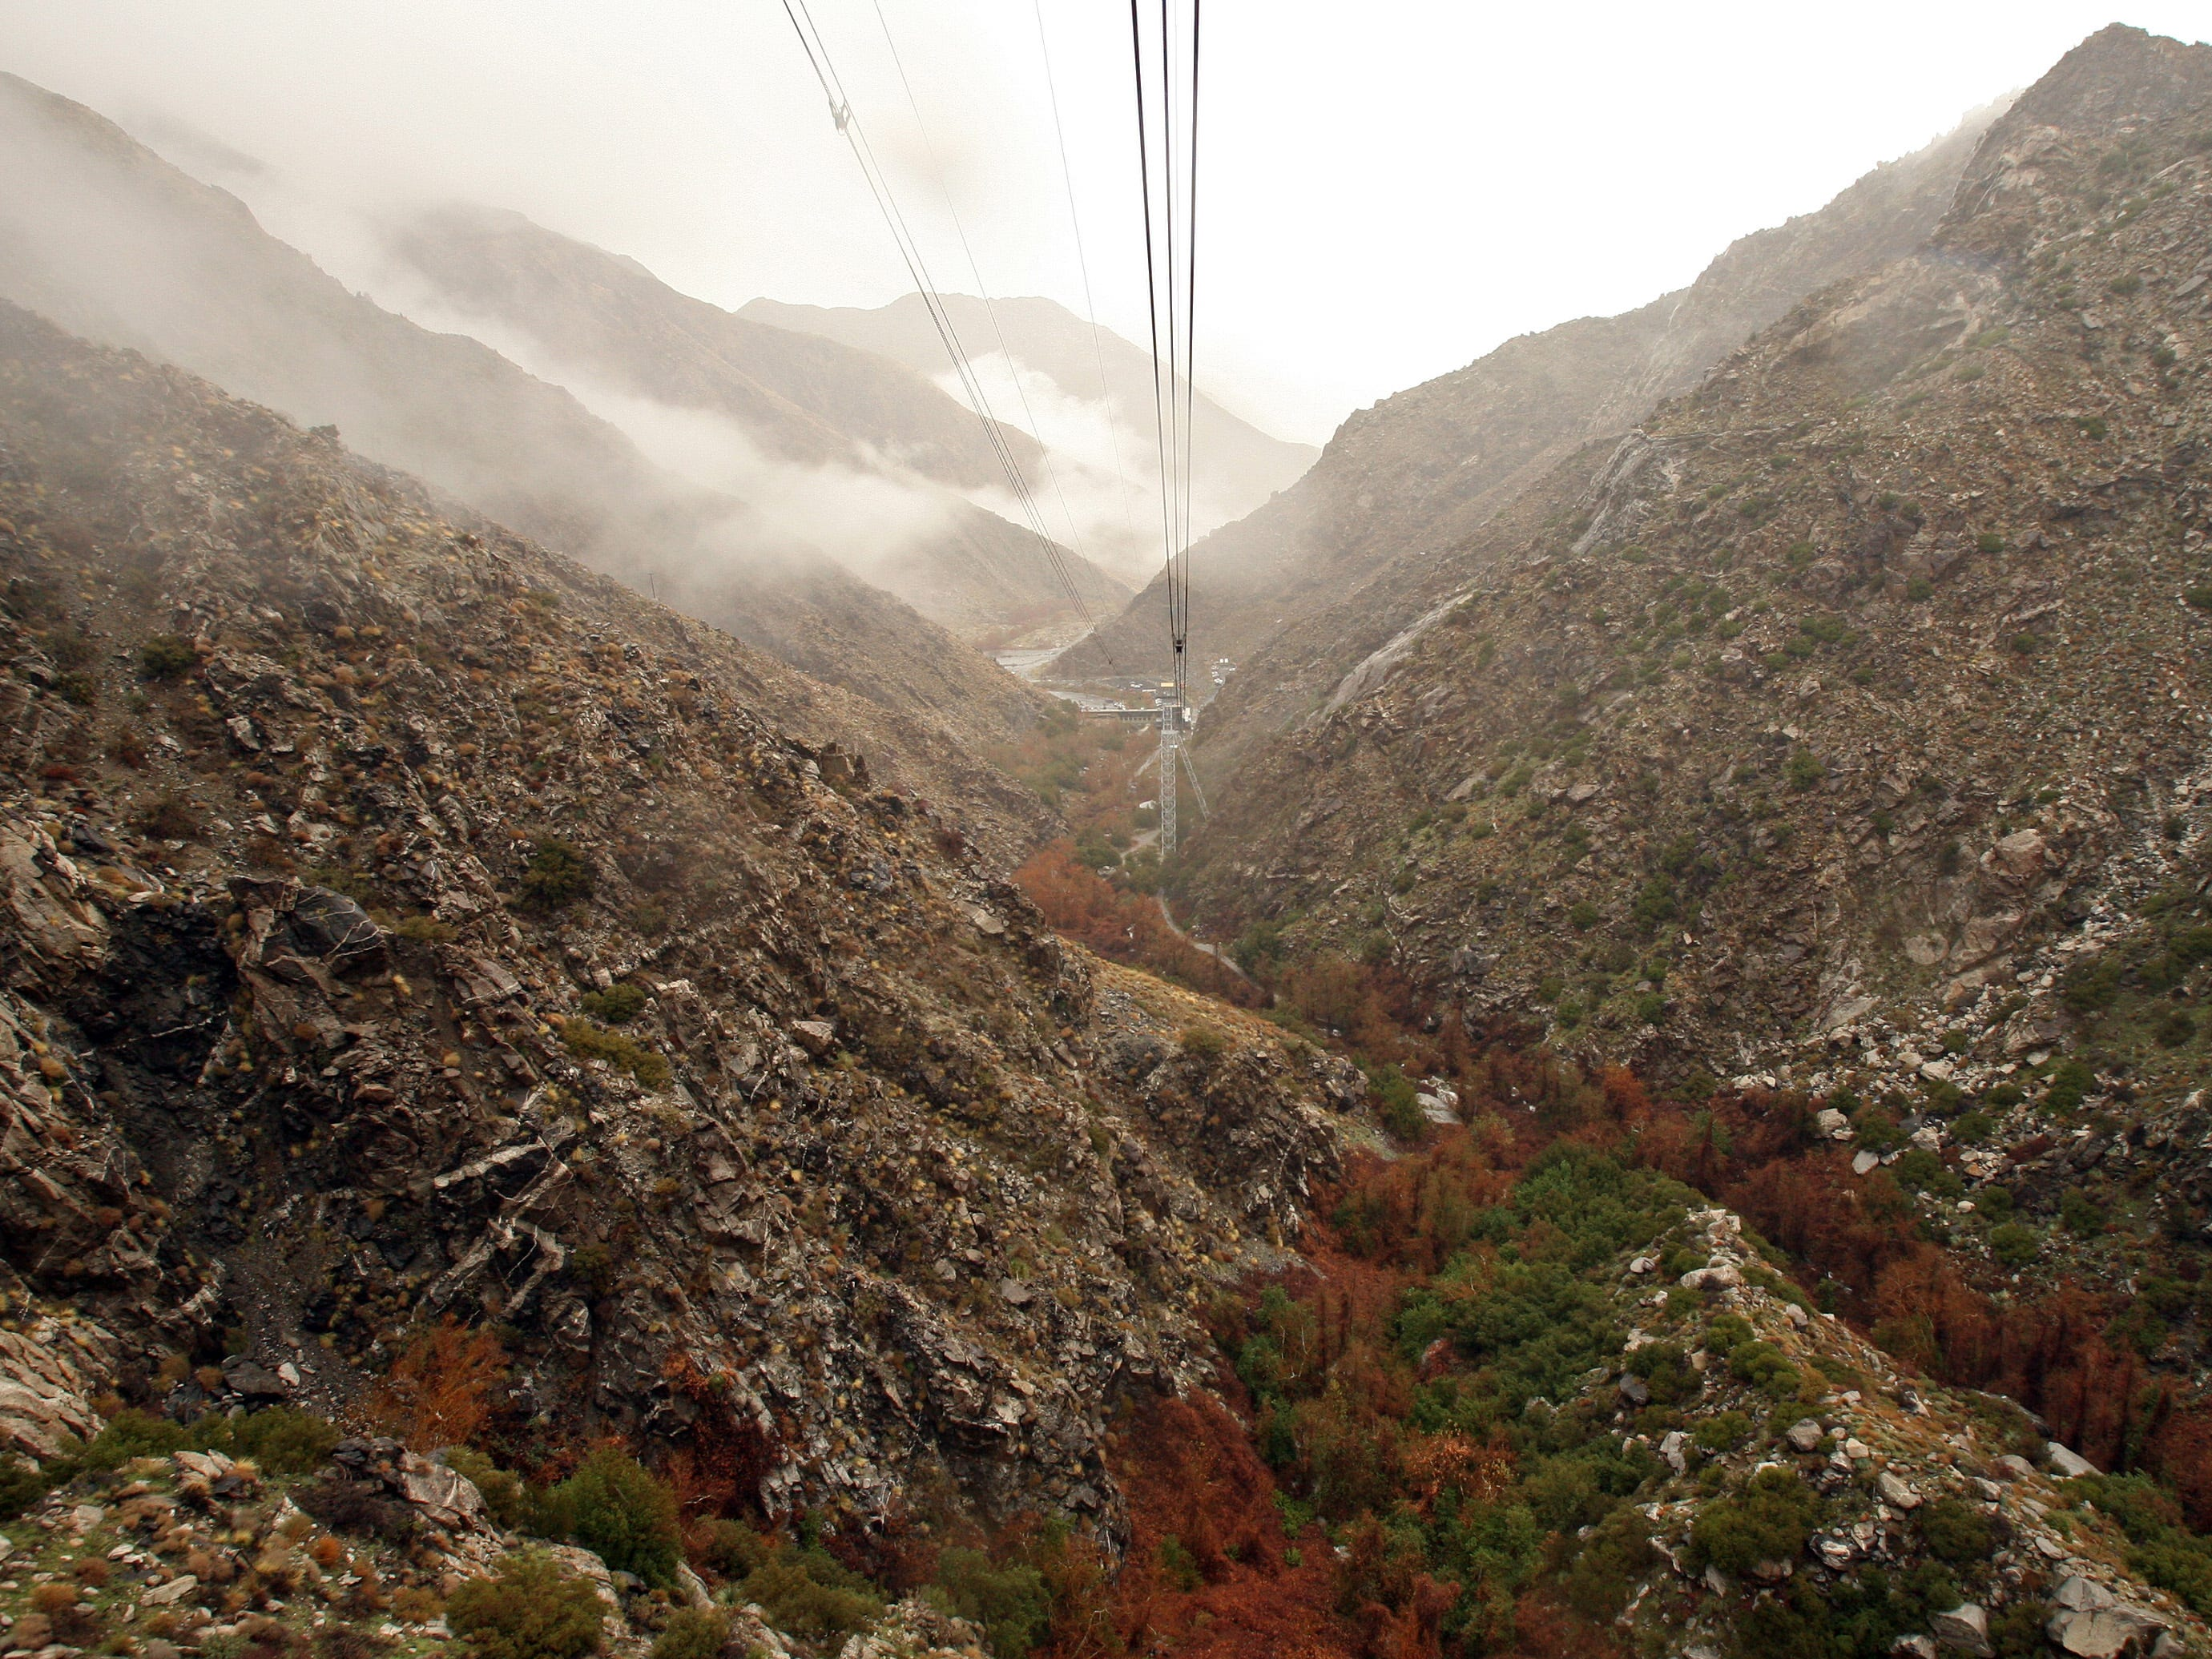 This December 2010 photo shows cables stretching from the Palm Springs Aerial Tramway's lower station.